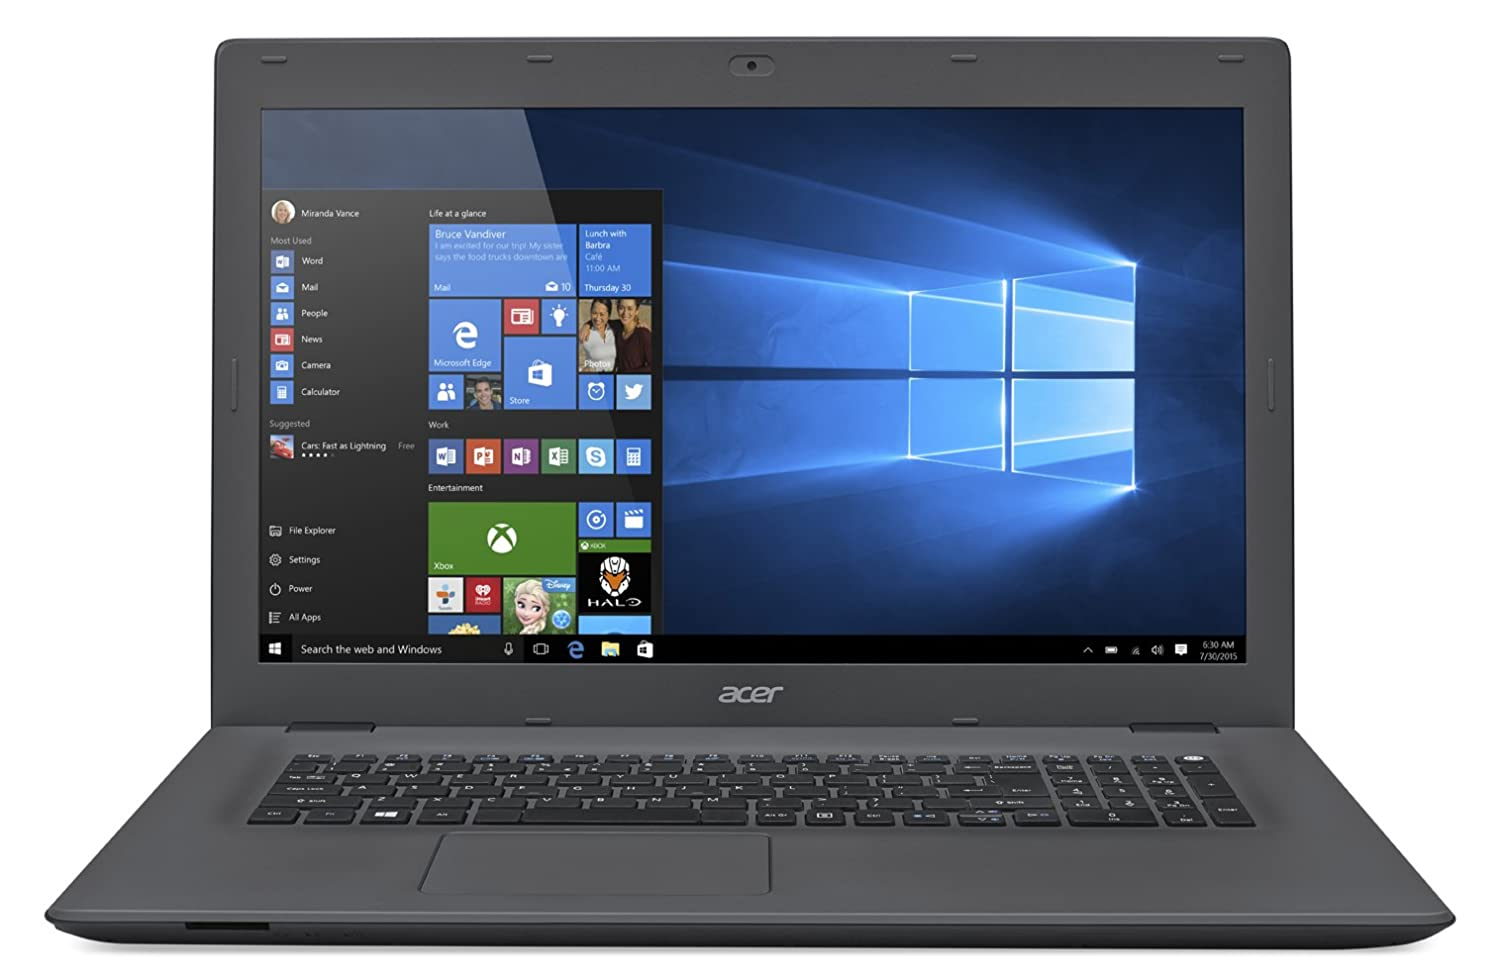 ACER ASPIRE E5-772G INTEL WLAN WINDOWS 8.1 DRIVERS DOWNLOAD